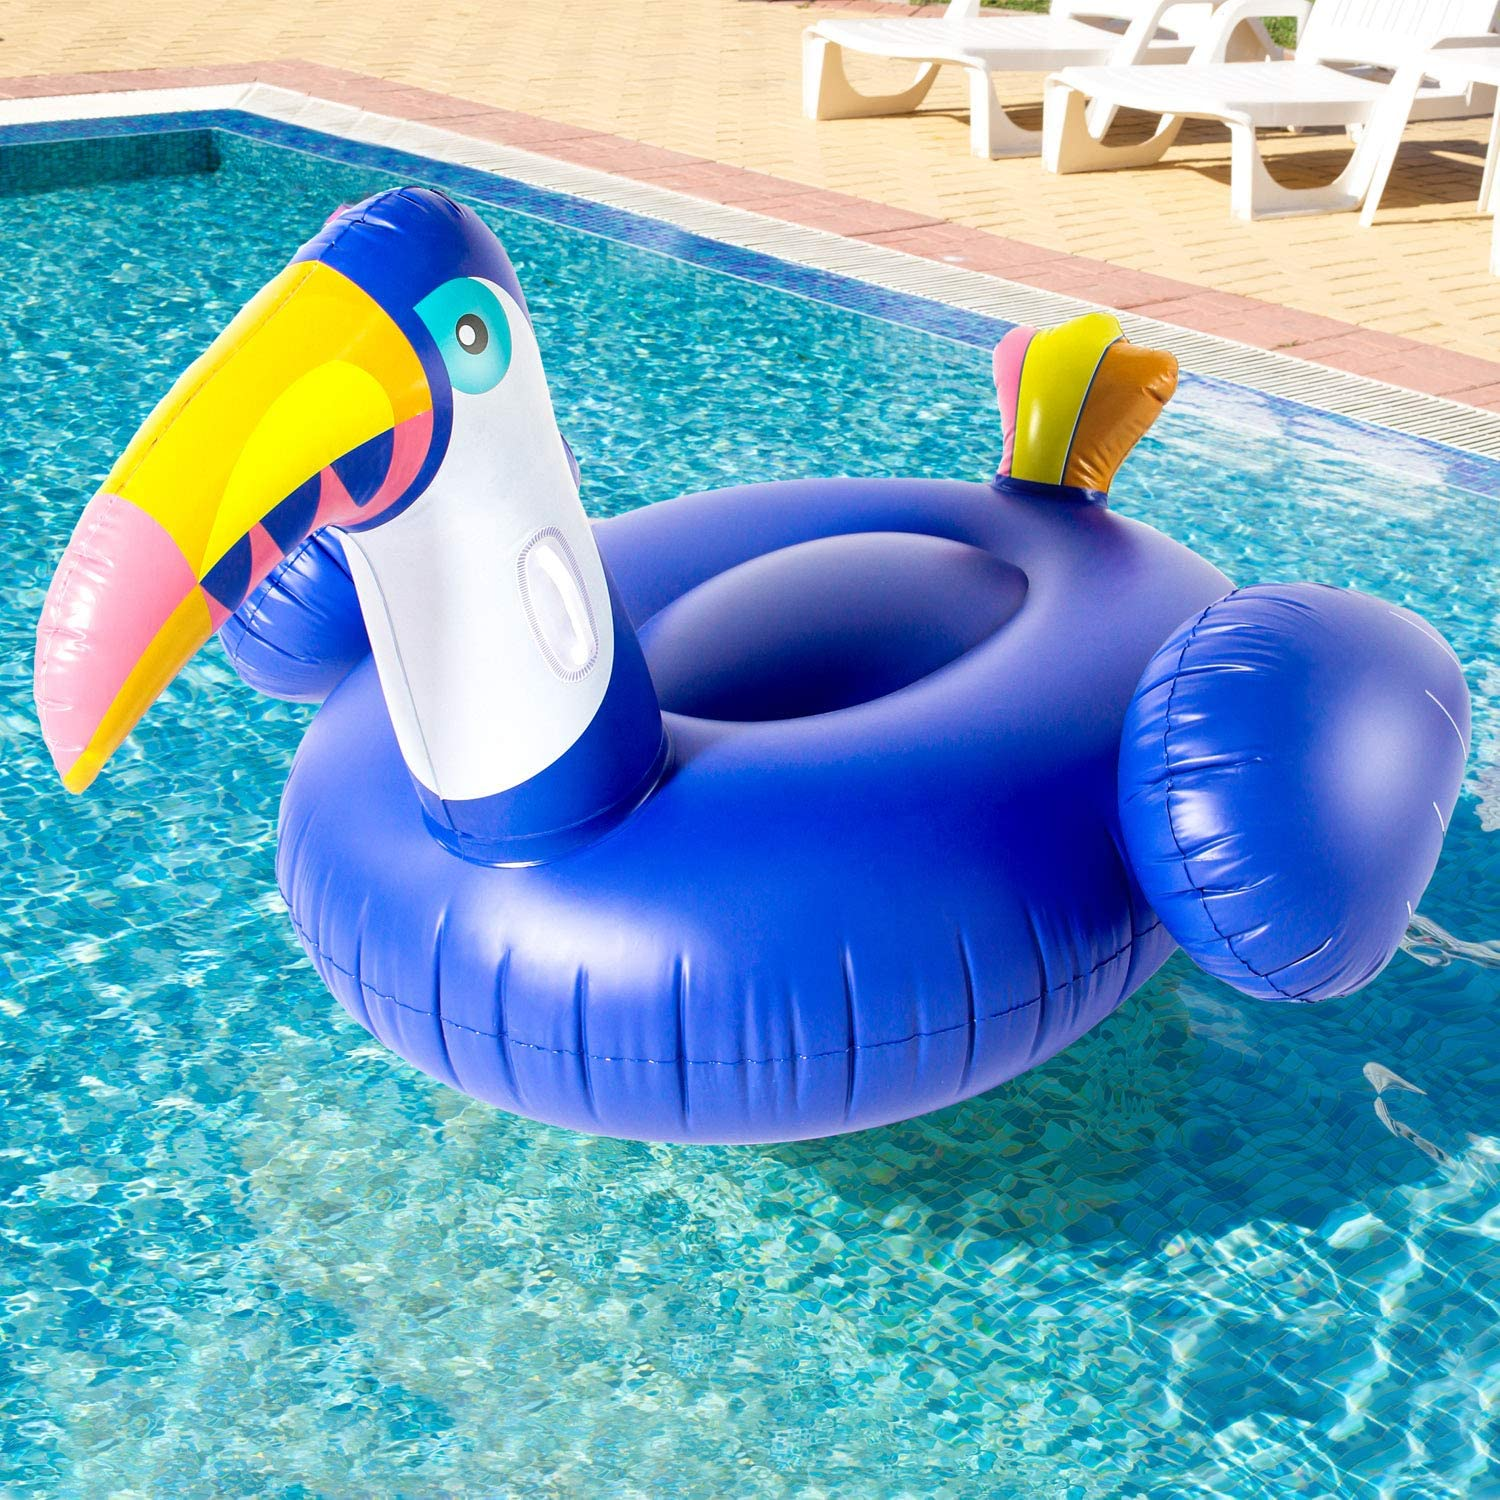 Swimming Pool Raft Lounge Ride-on for Pool Party Beach Best Gift SPERPAND Inflatable Blue Toucan Pool Floats